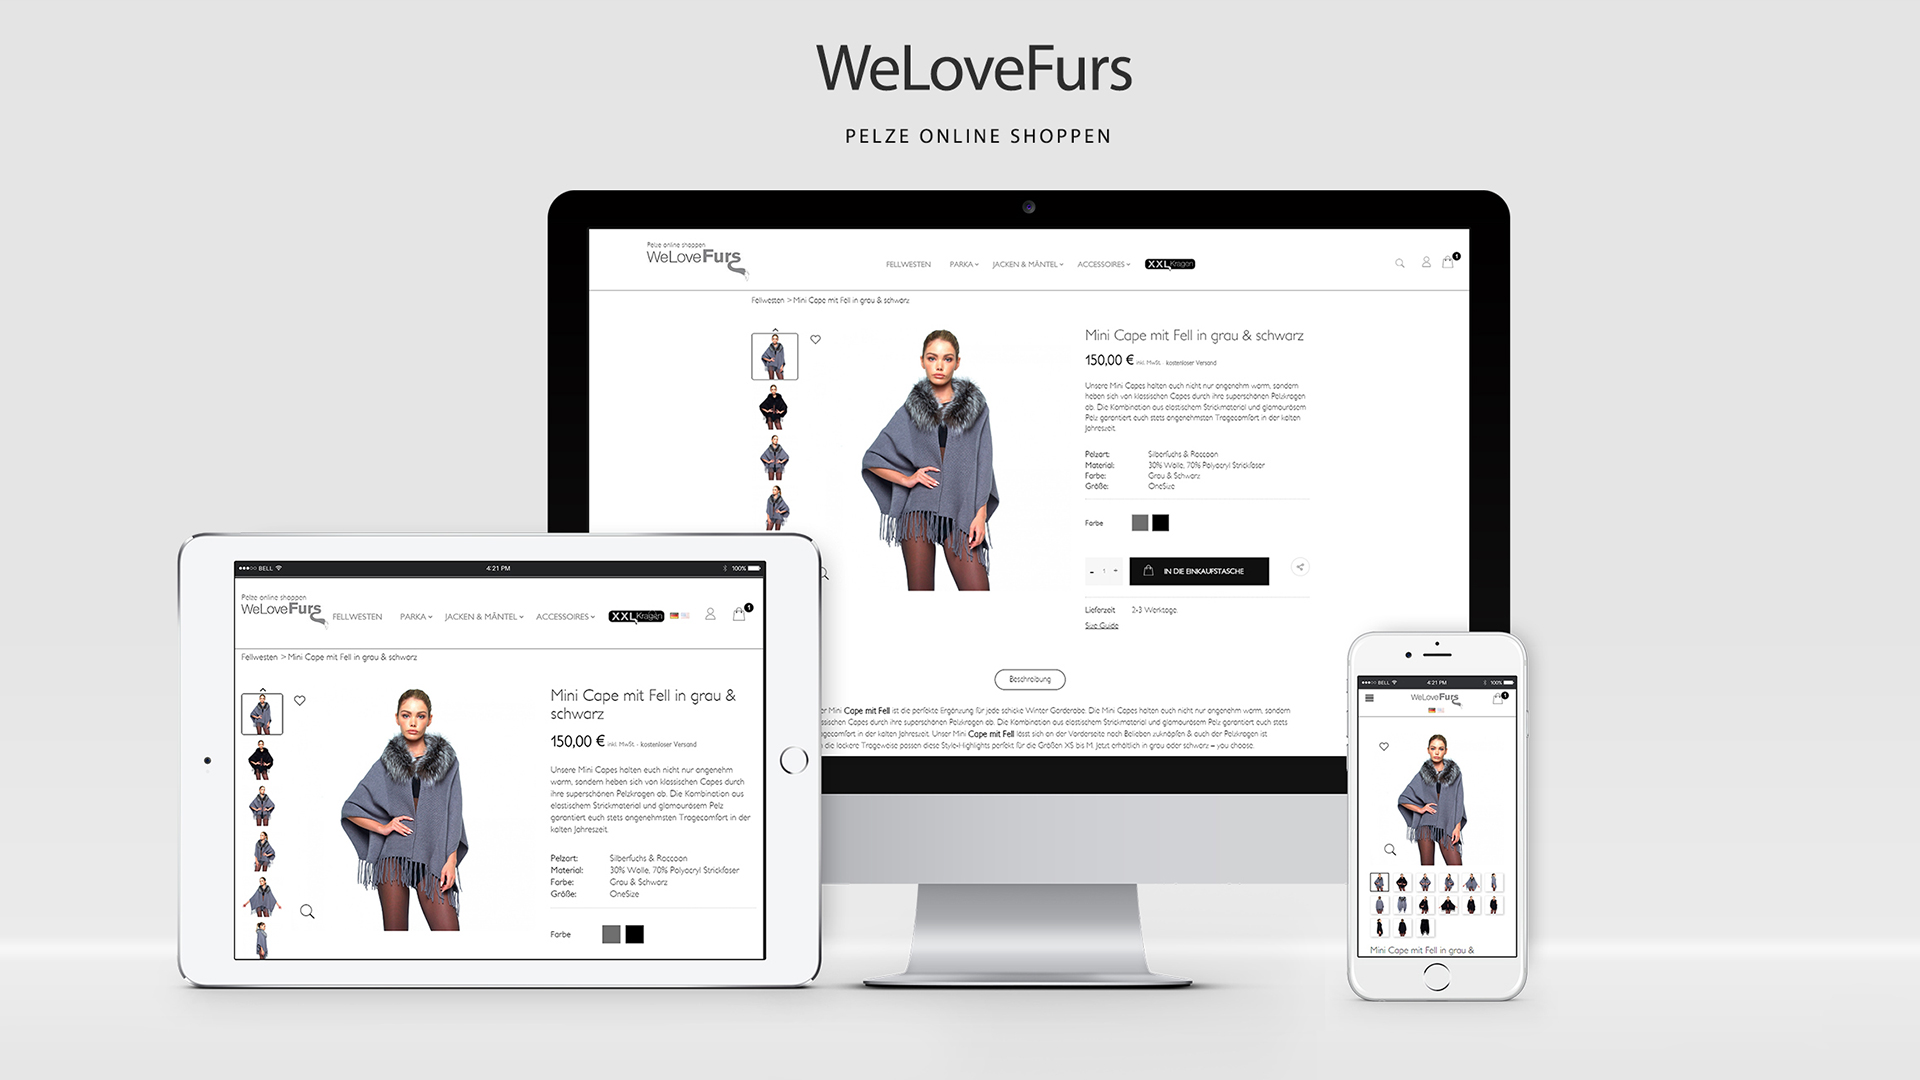 WeloveFurs PrestaShop Online Shop Design